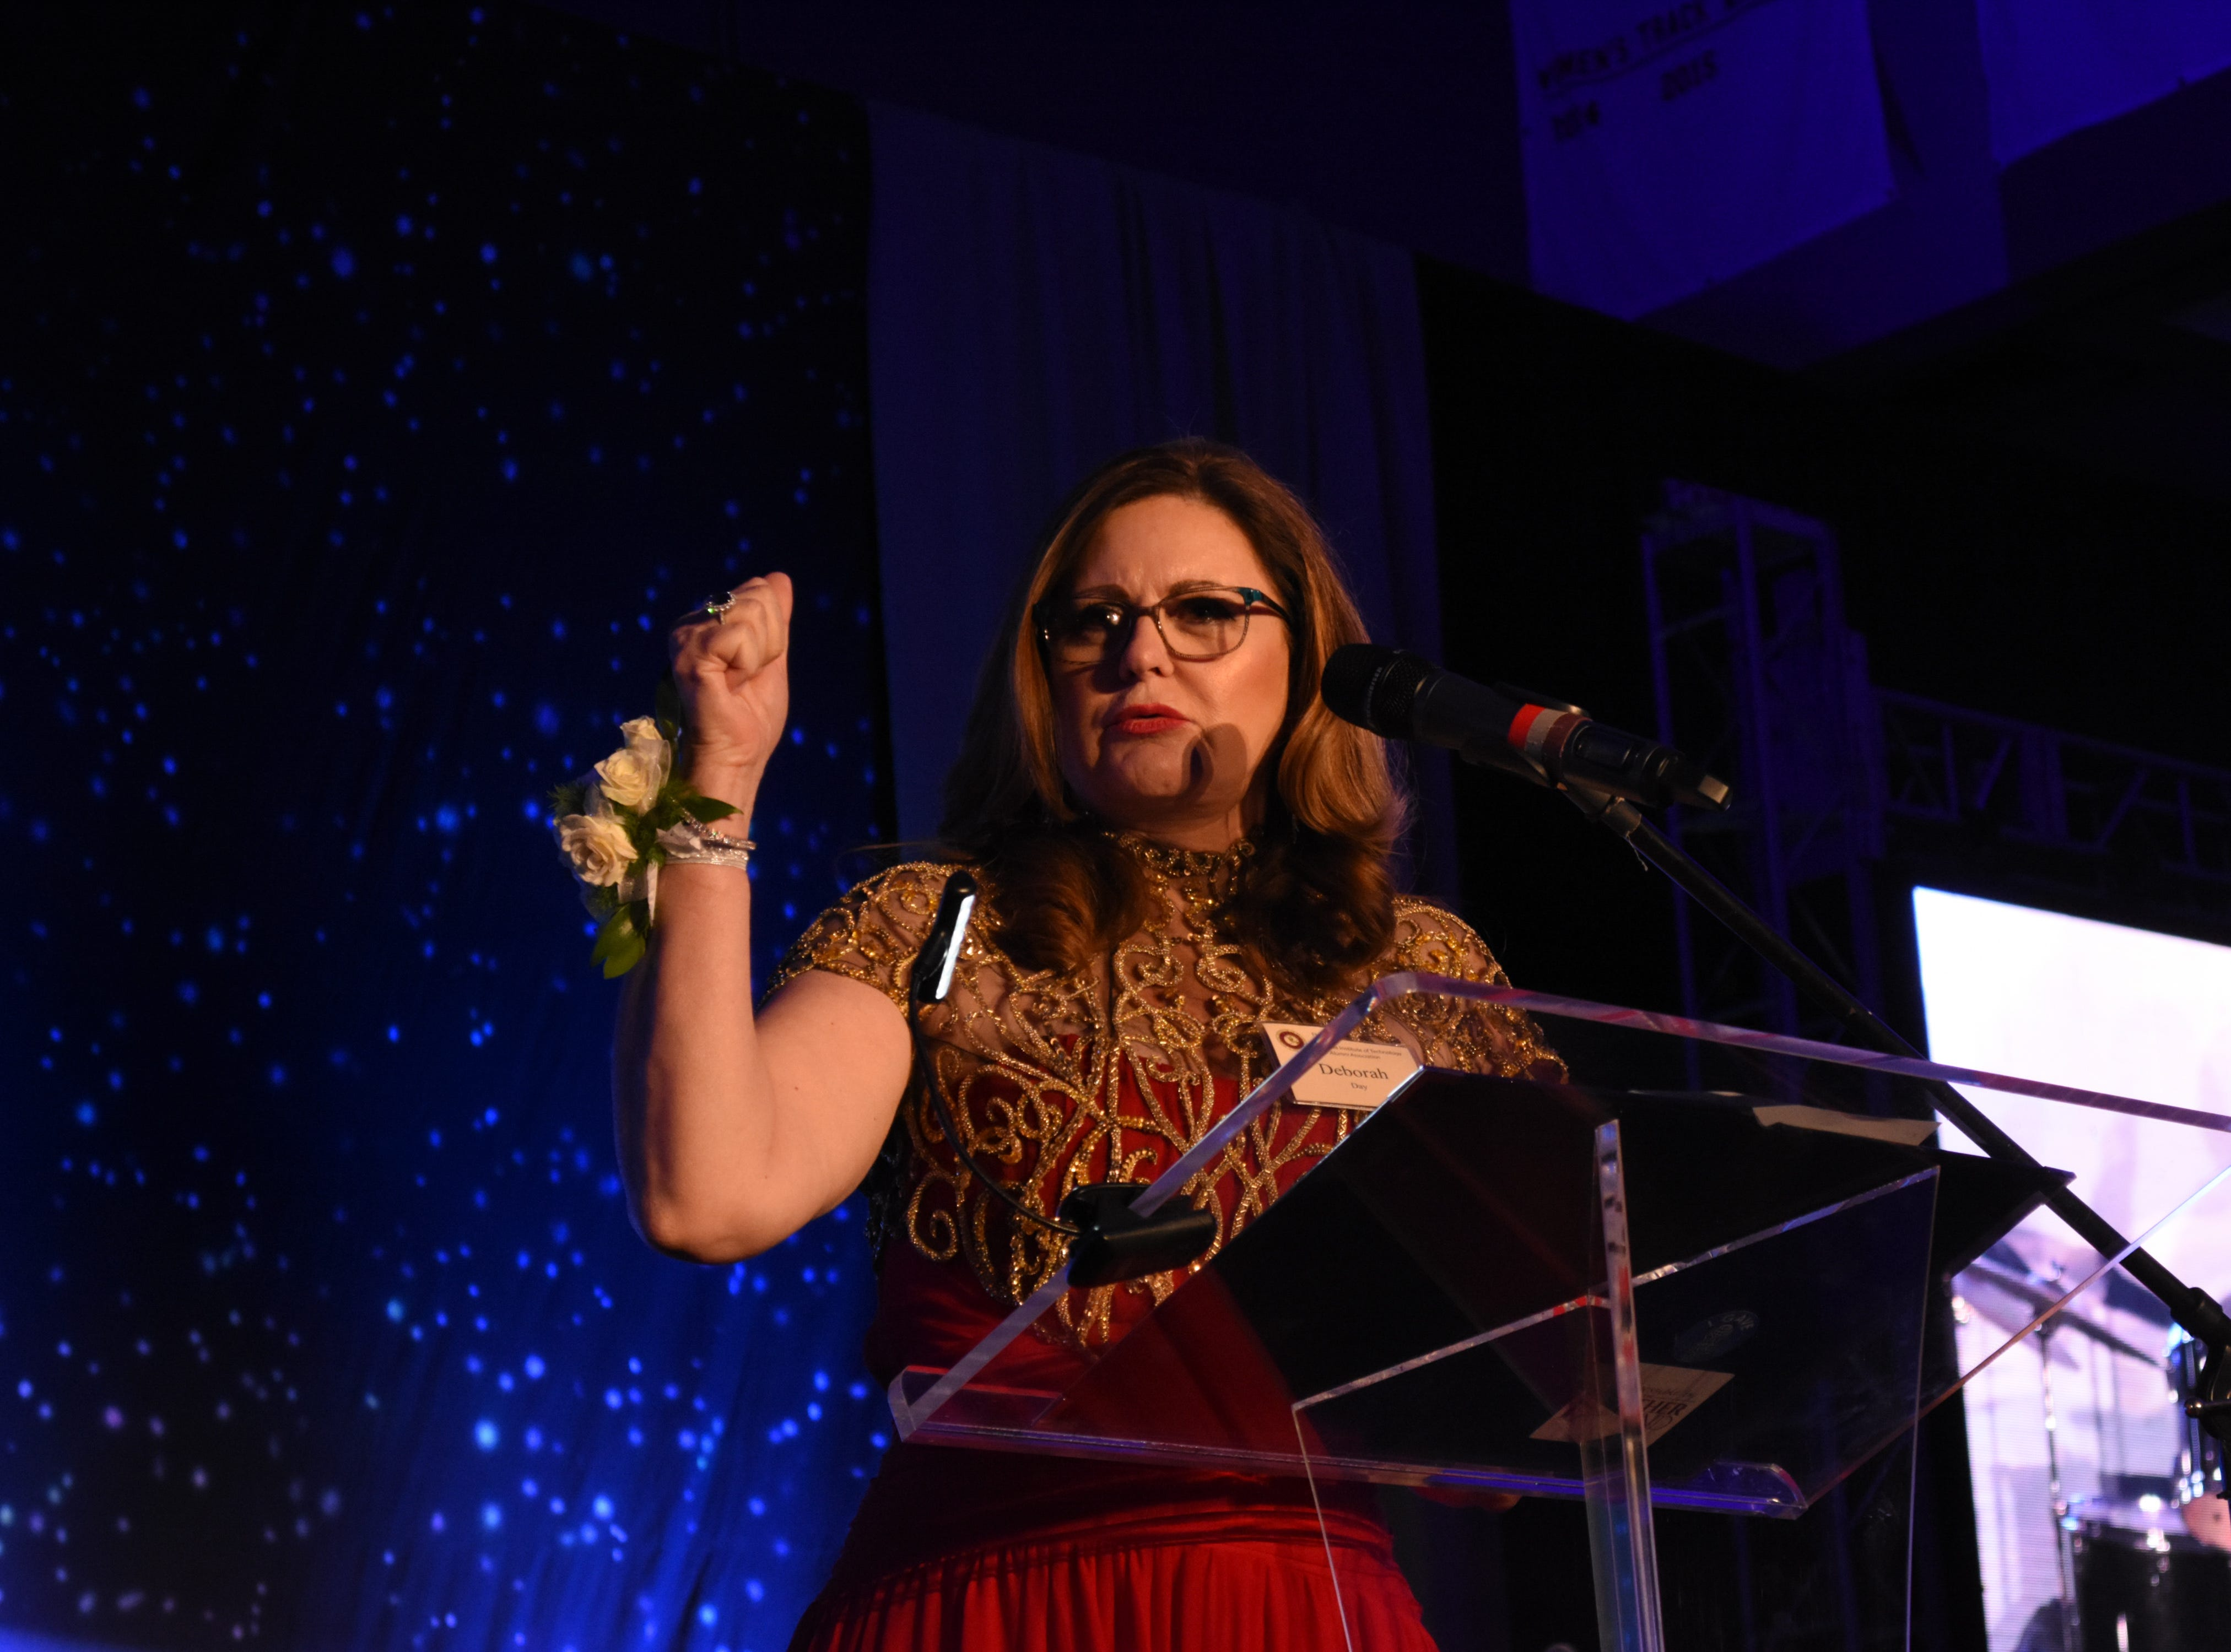 The College of Psychology and Liberal Arts Outstanding Alumni award winner Deborah O. Day speaks to the crow at Florida Tech's 60th Anniversary Homecoming Gala Oct. 13, 2018, at the Clemente Center.